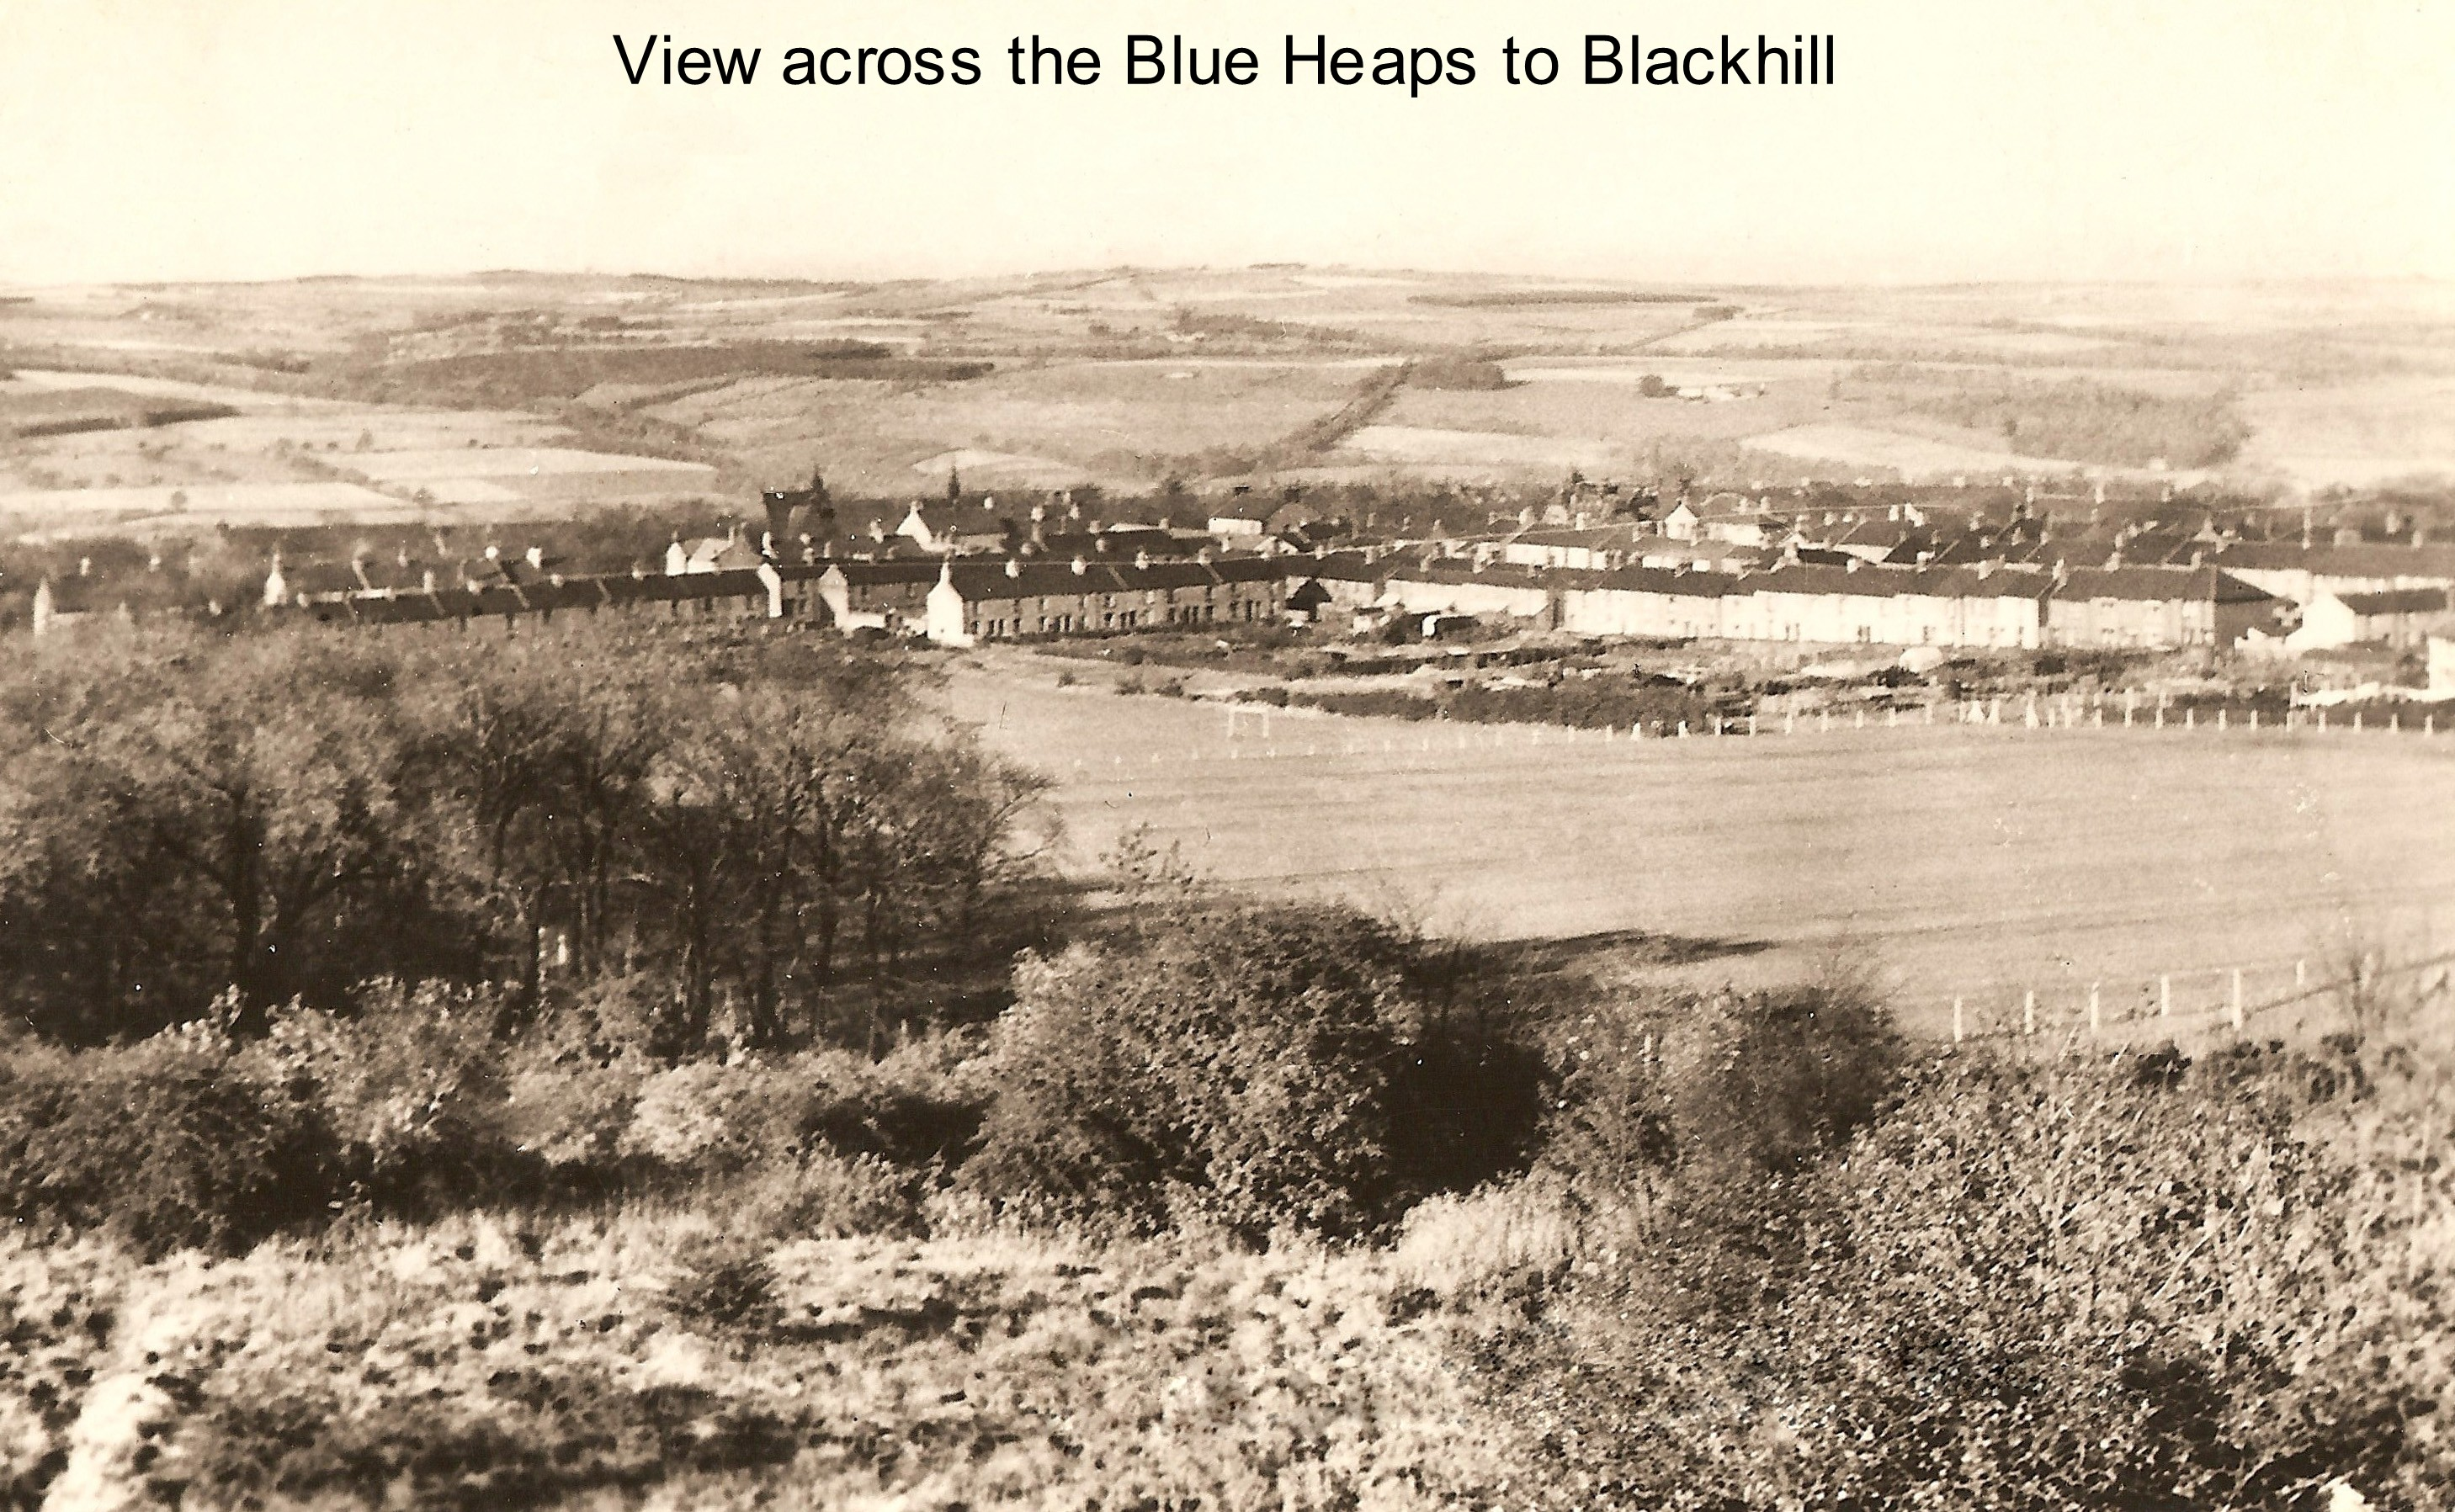 Consett and the blue heaps